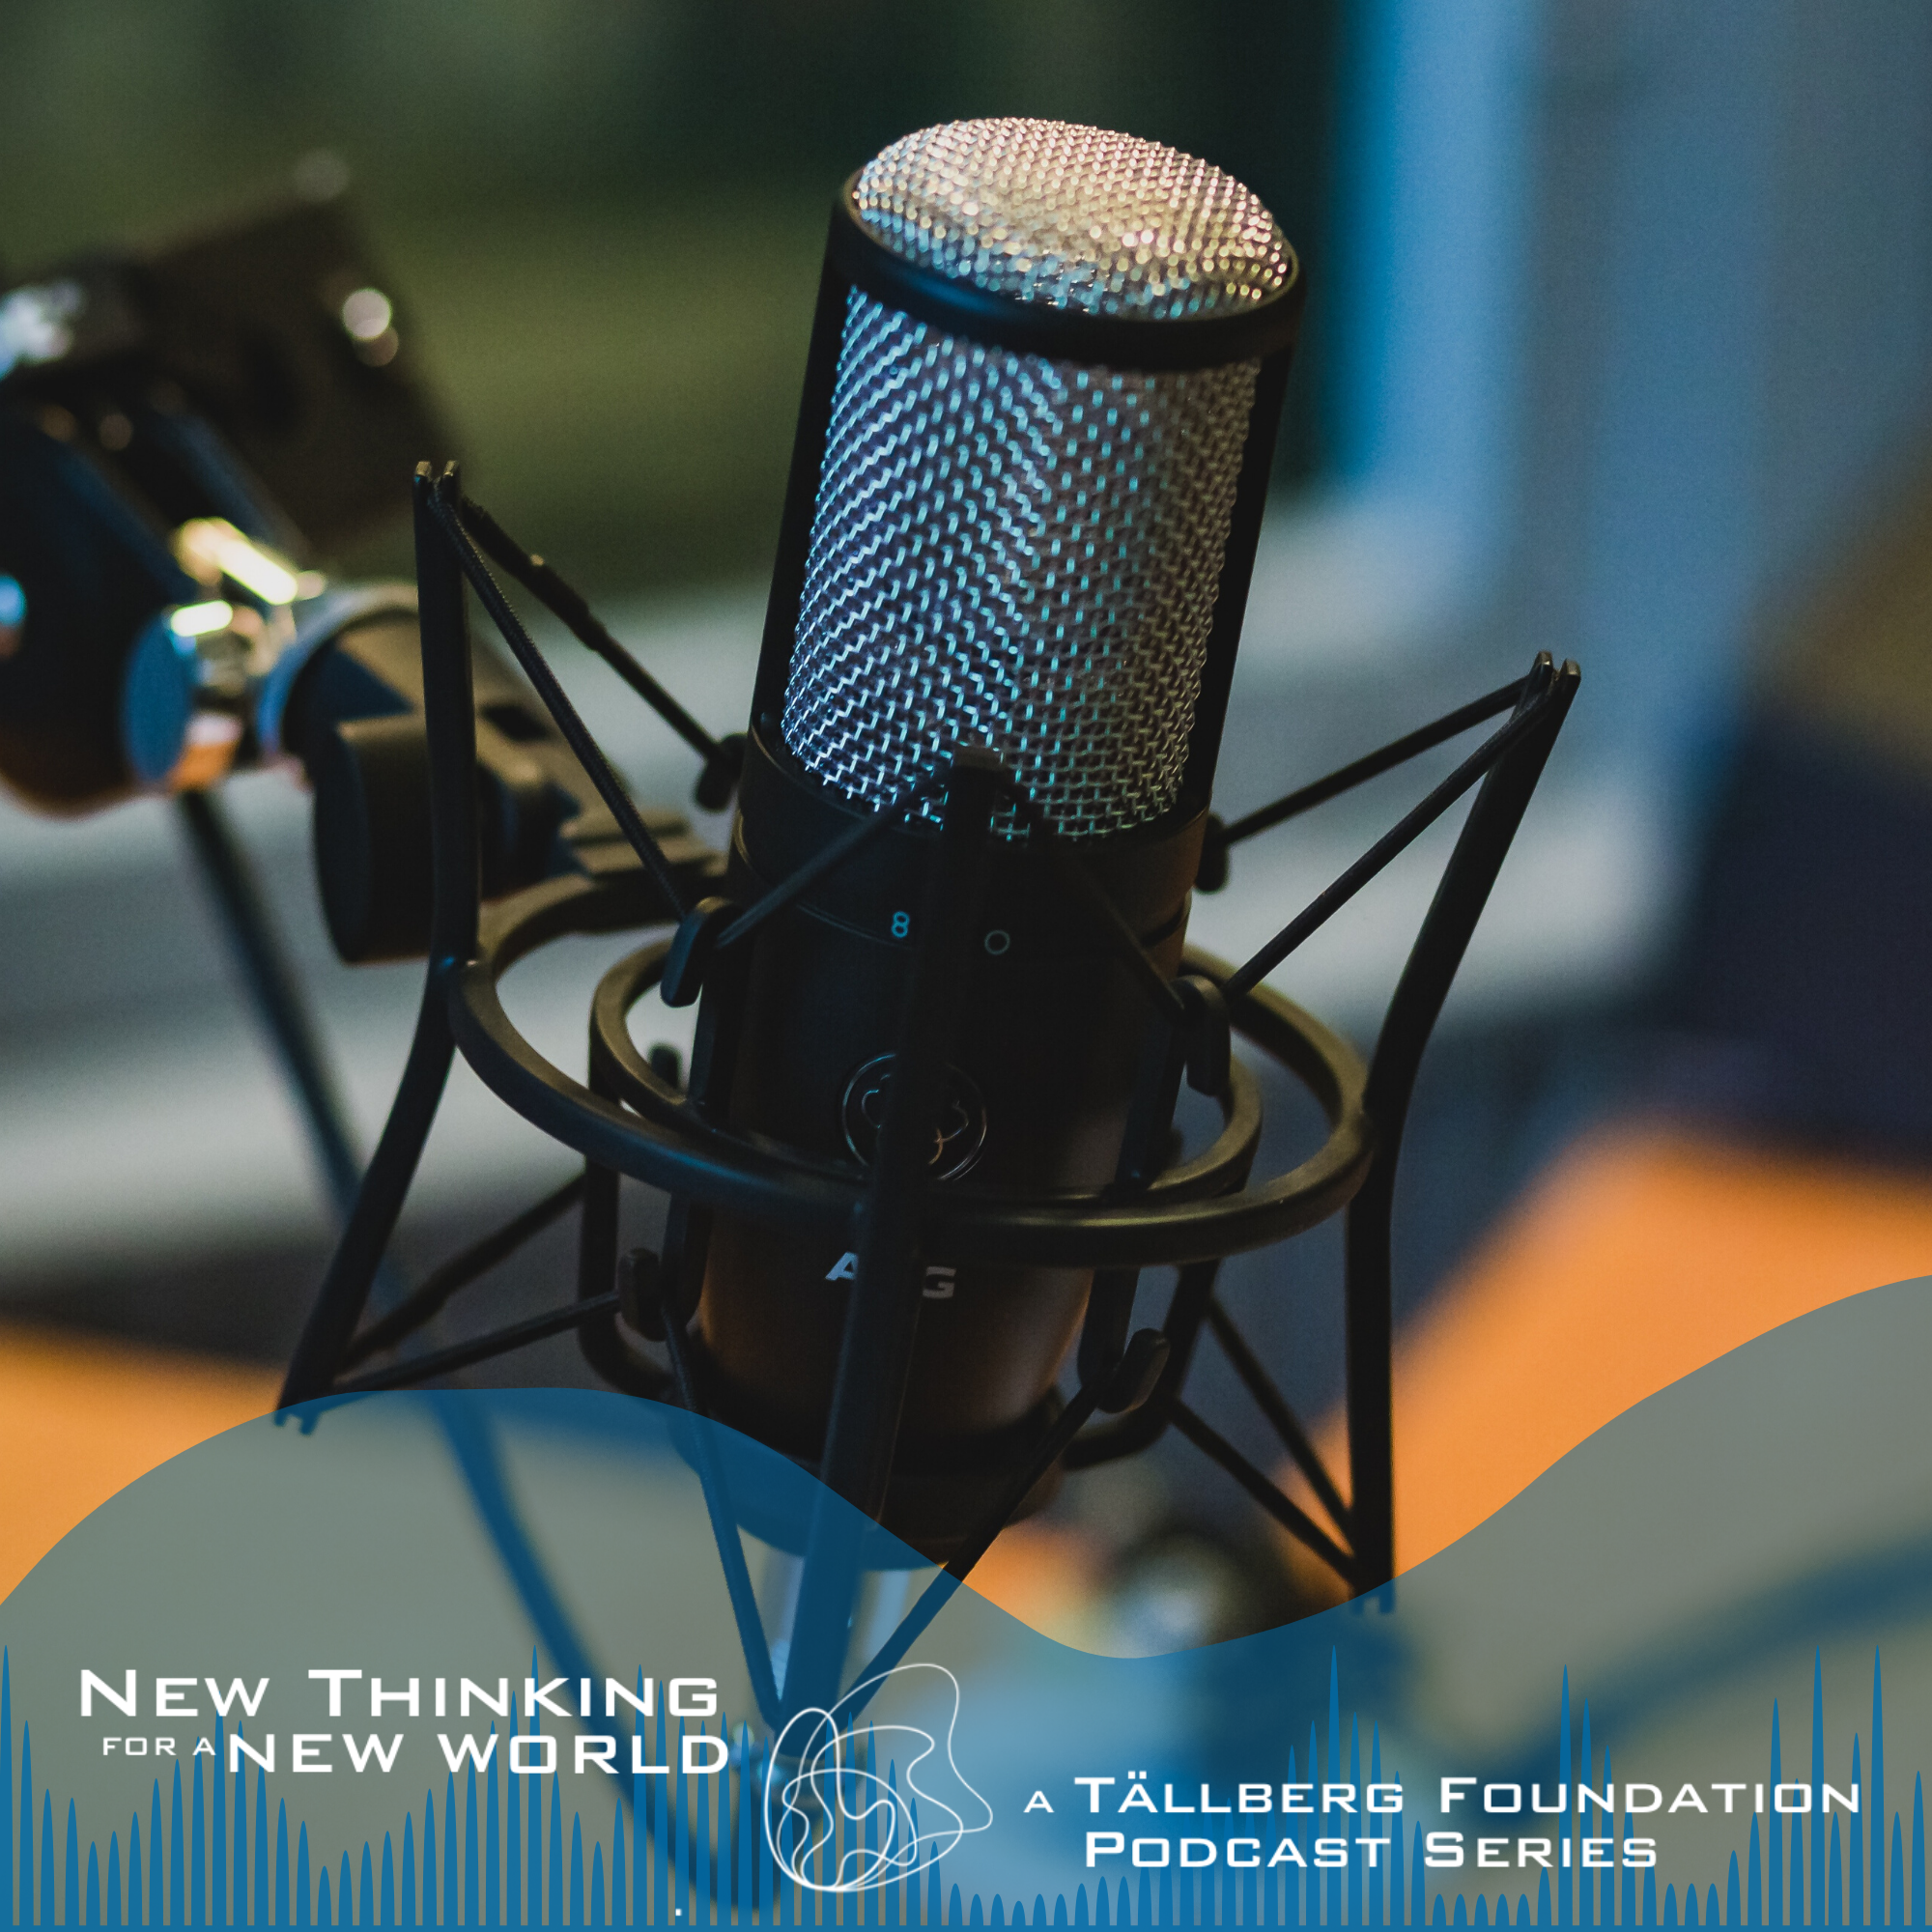 New Thinking for a New World - a Tallberg Foundation Podcast show art